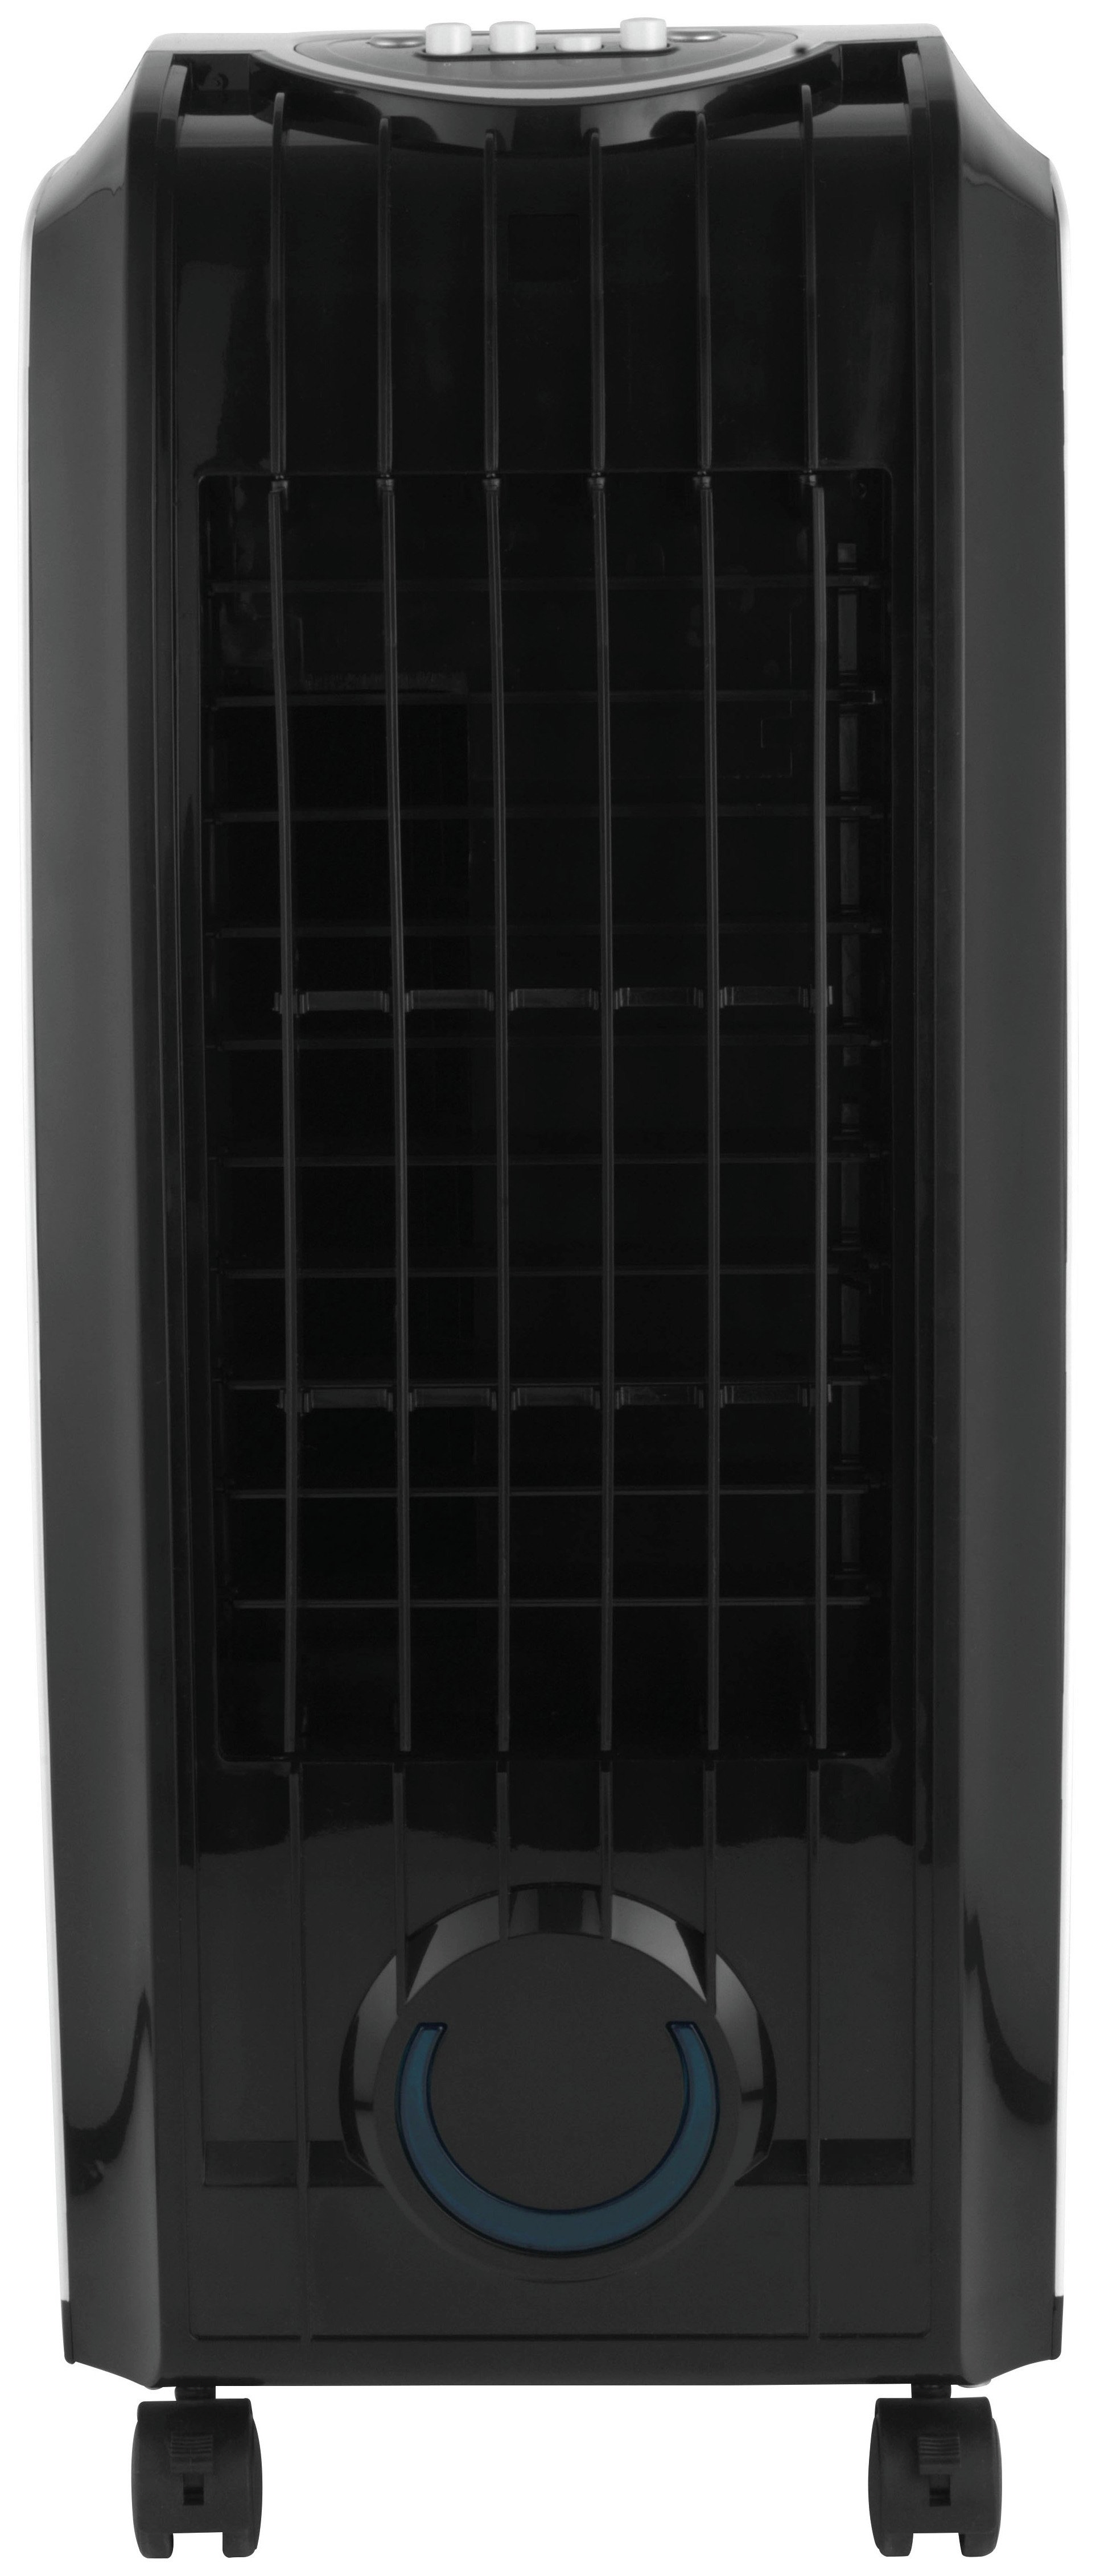 beldray 8 litre air cooler review. Black Bedroom Furniture Sets. Home Design Ideas